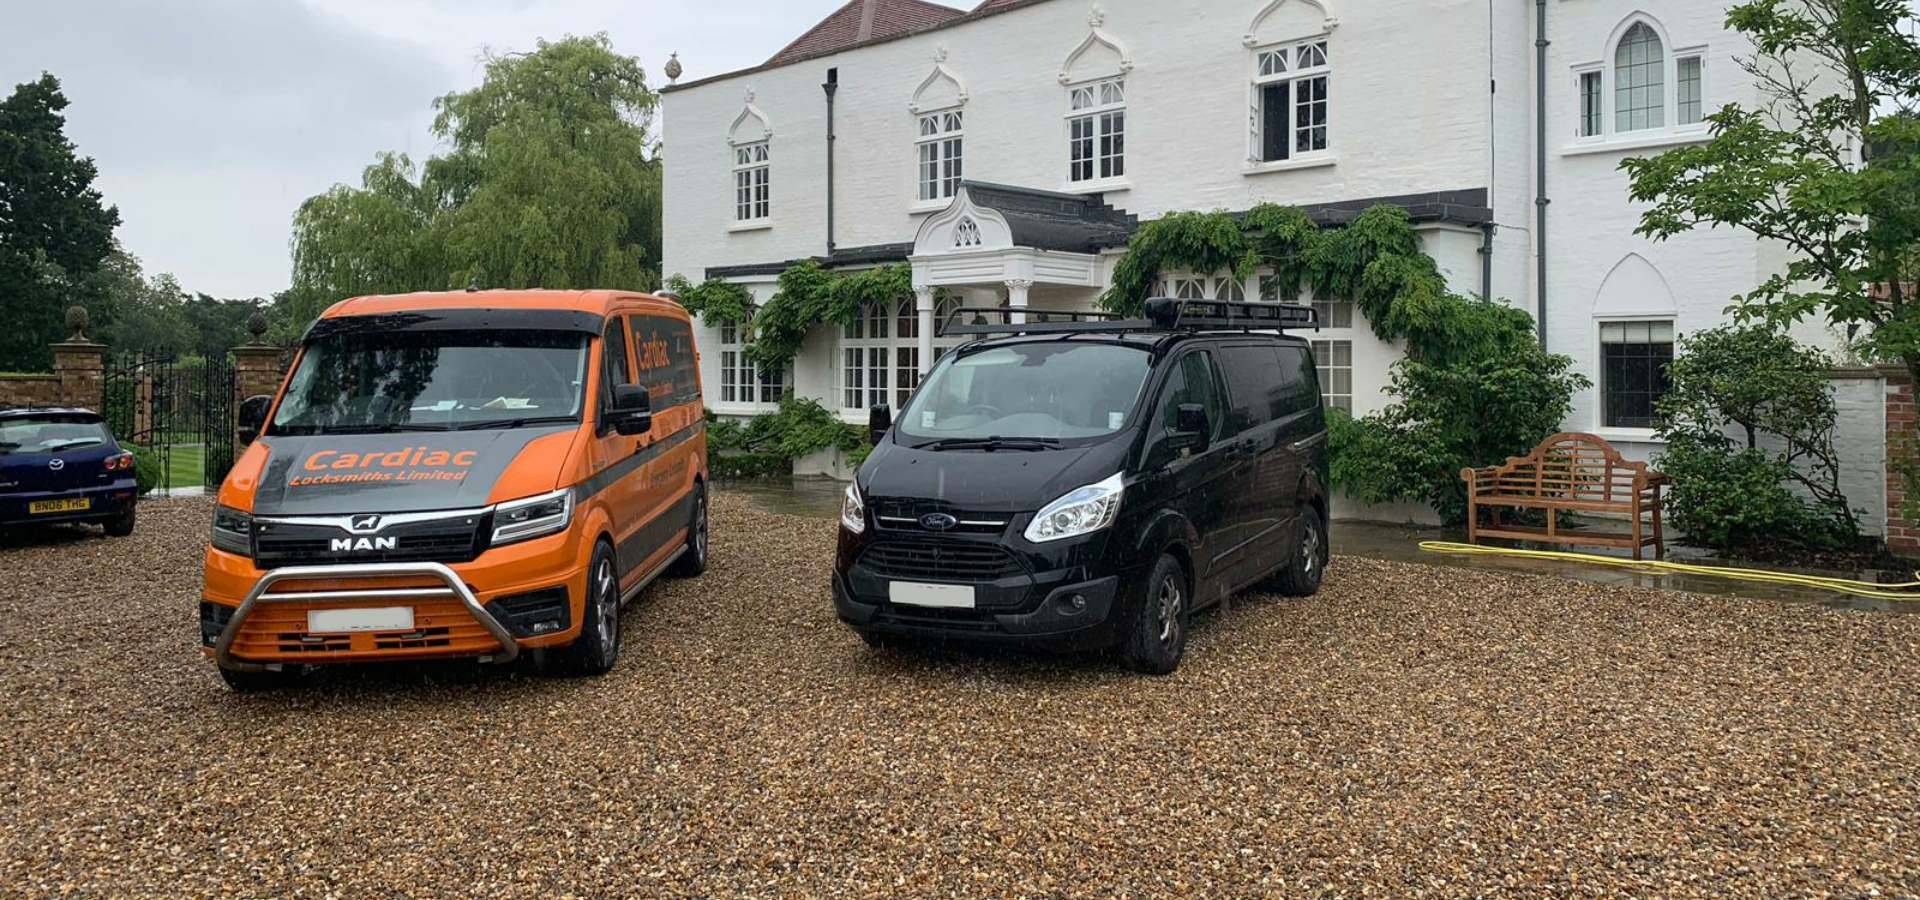 Vehicle Tracking Berkshire